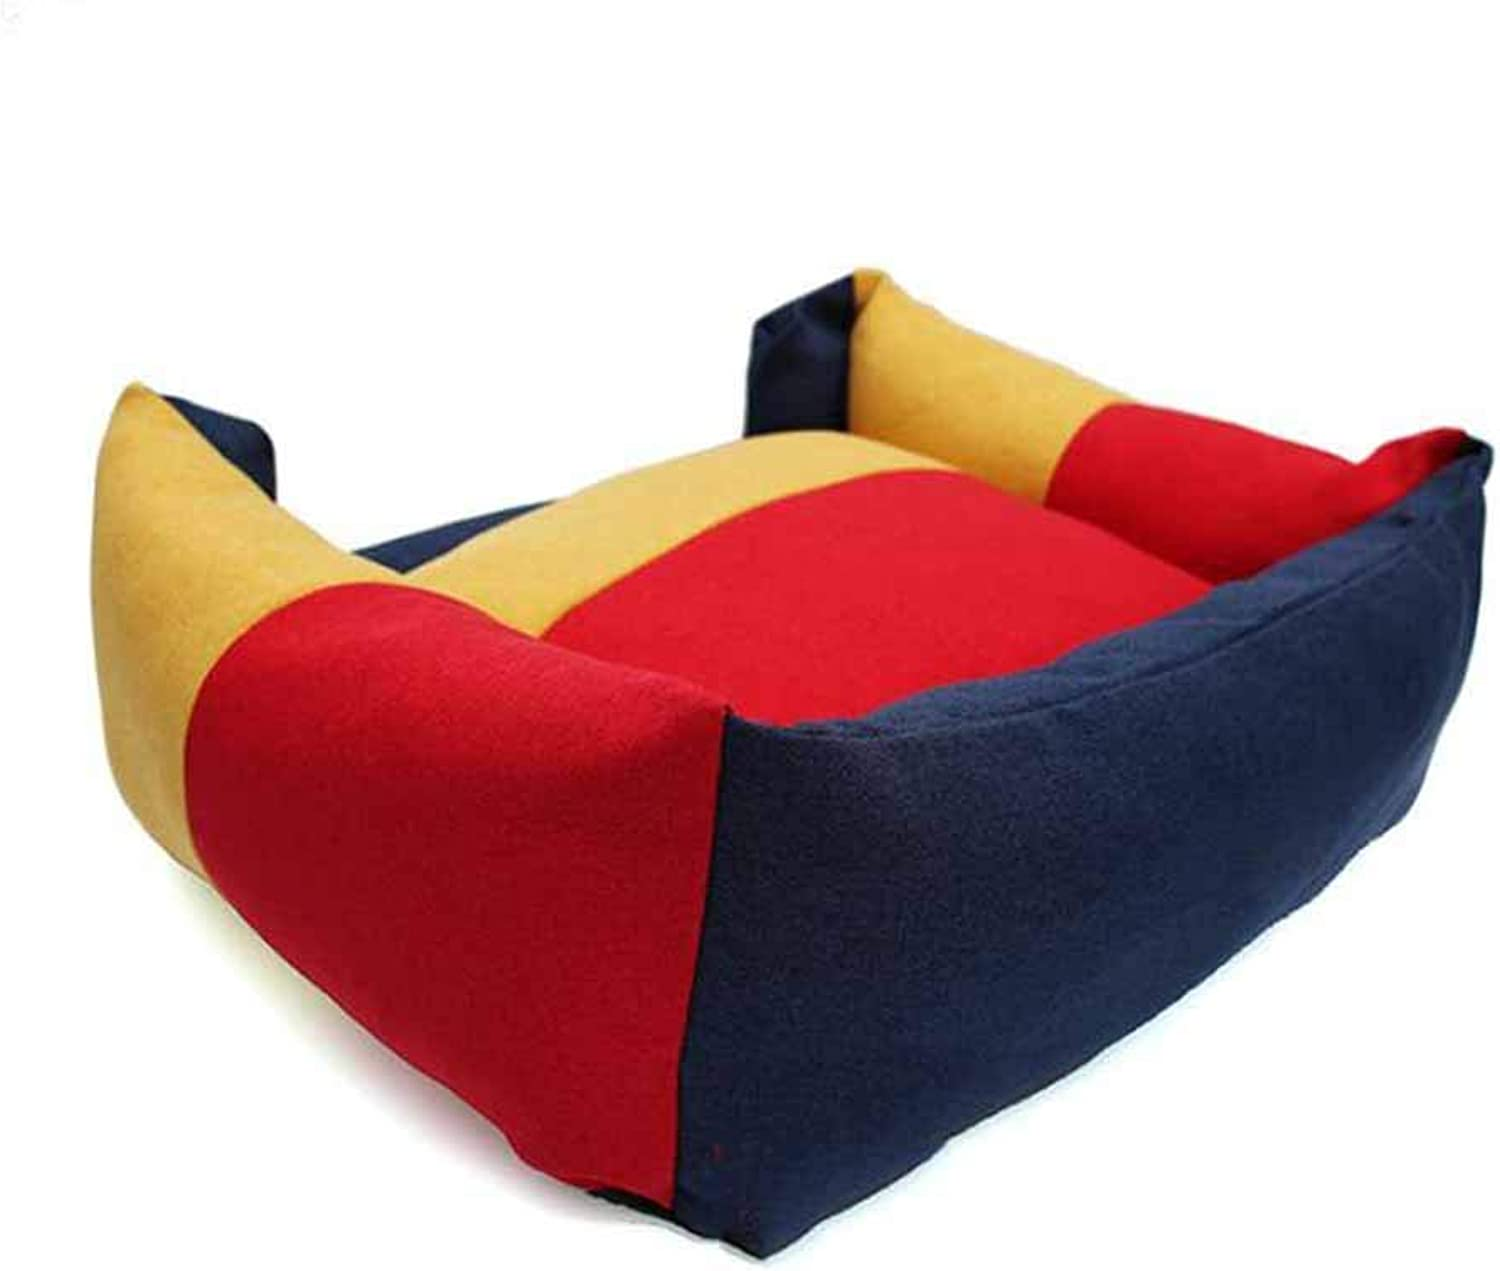 Gperw Pet Sofa Bed Fully Removable And Washable Four Seasons Universal Pet Nest Cat Dog Mat Large Dog Bed Non Slip Cushion Pad